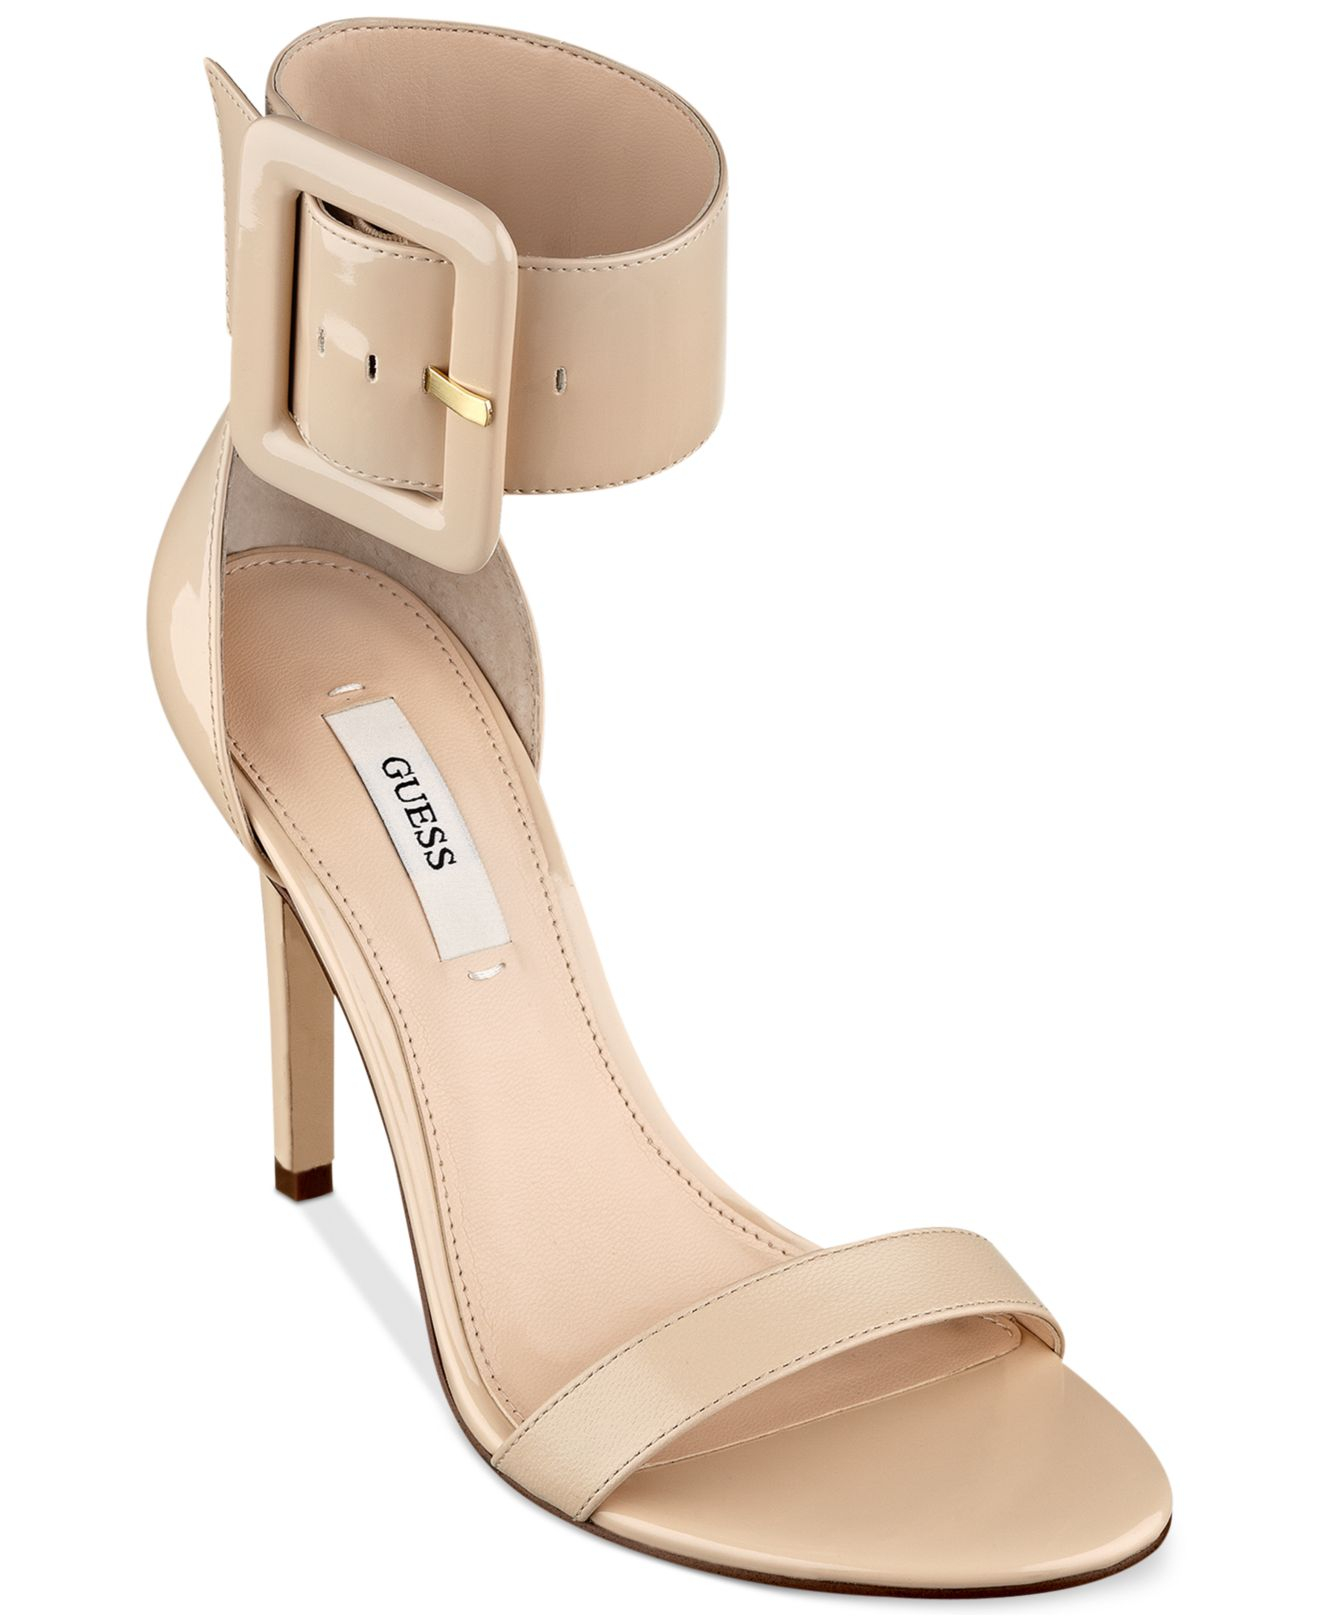 56622ac4c2b02 Lyst - Guess Odeum Two Piece Sandals in Natural